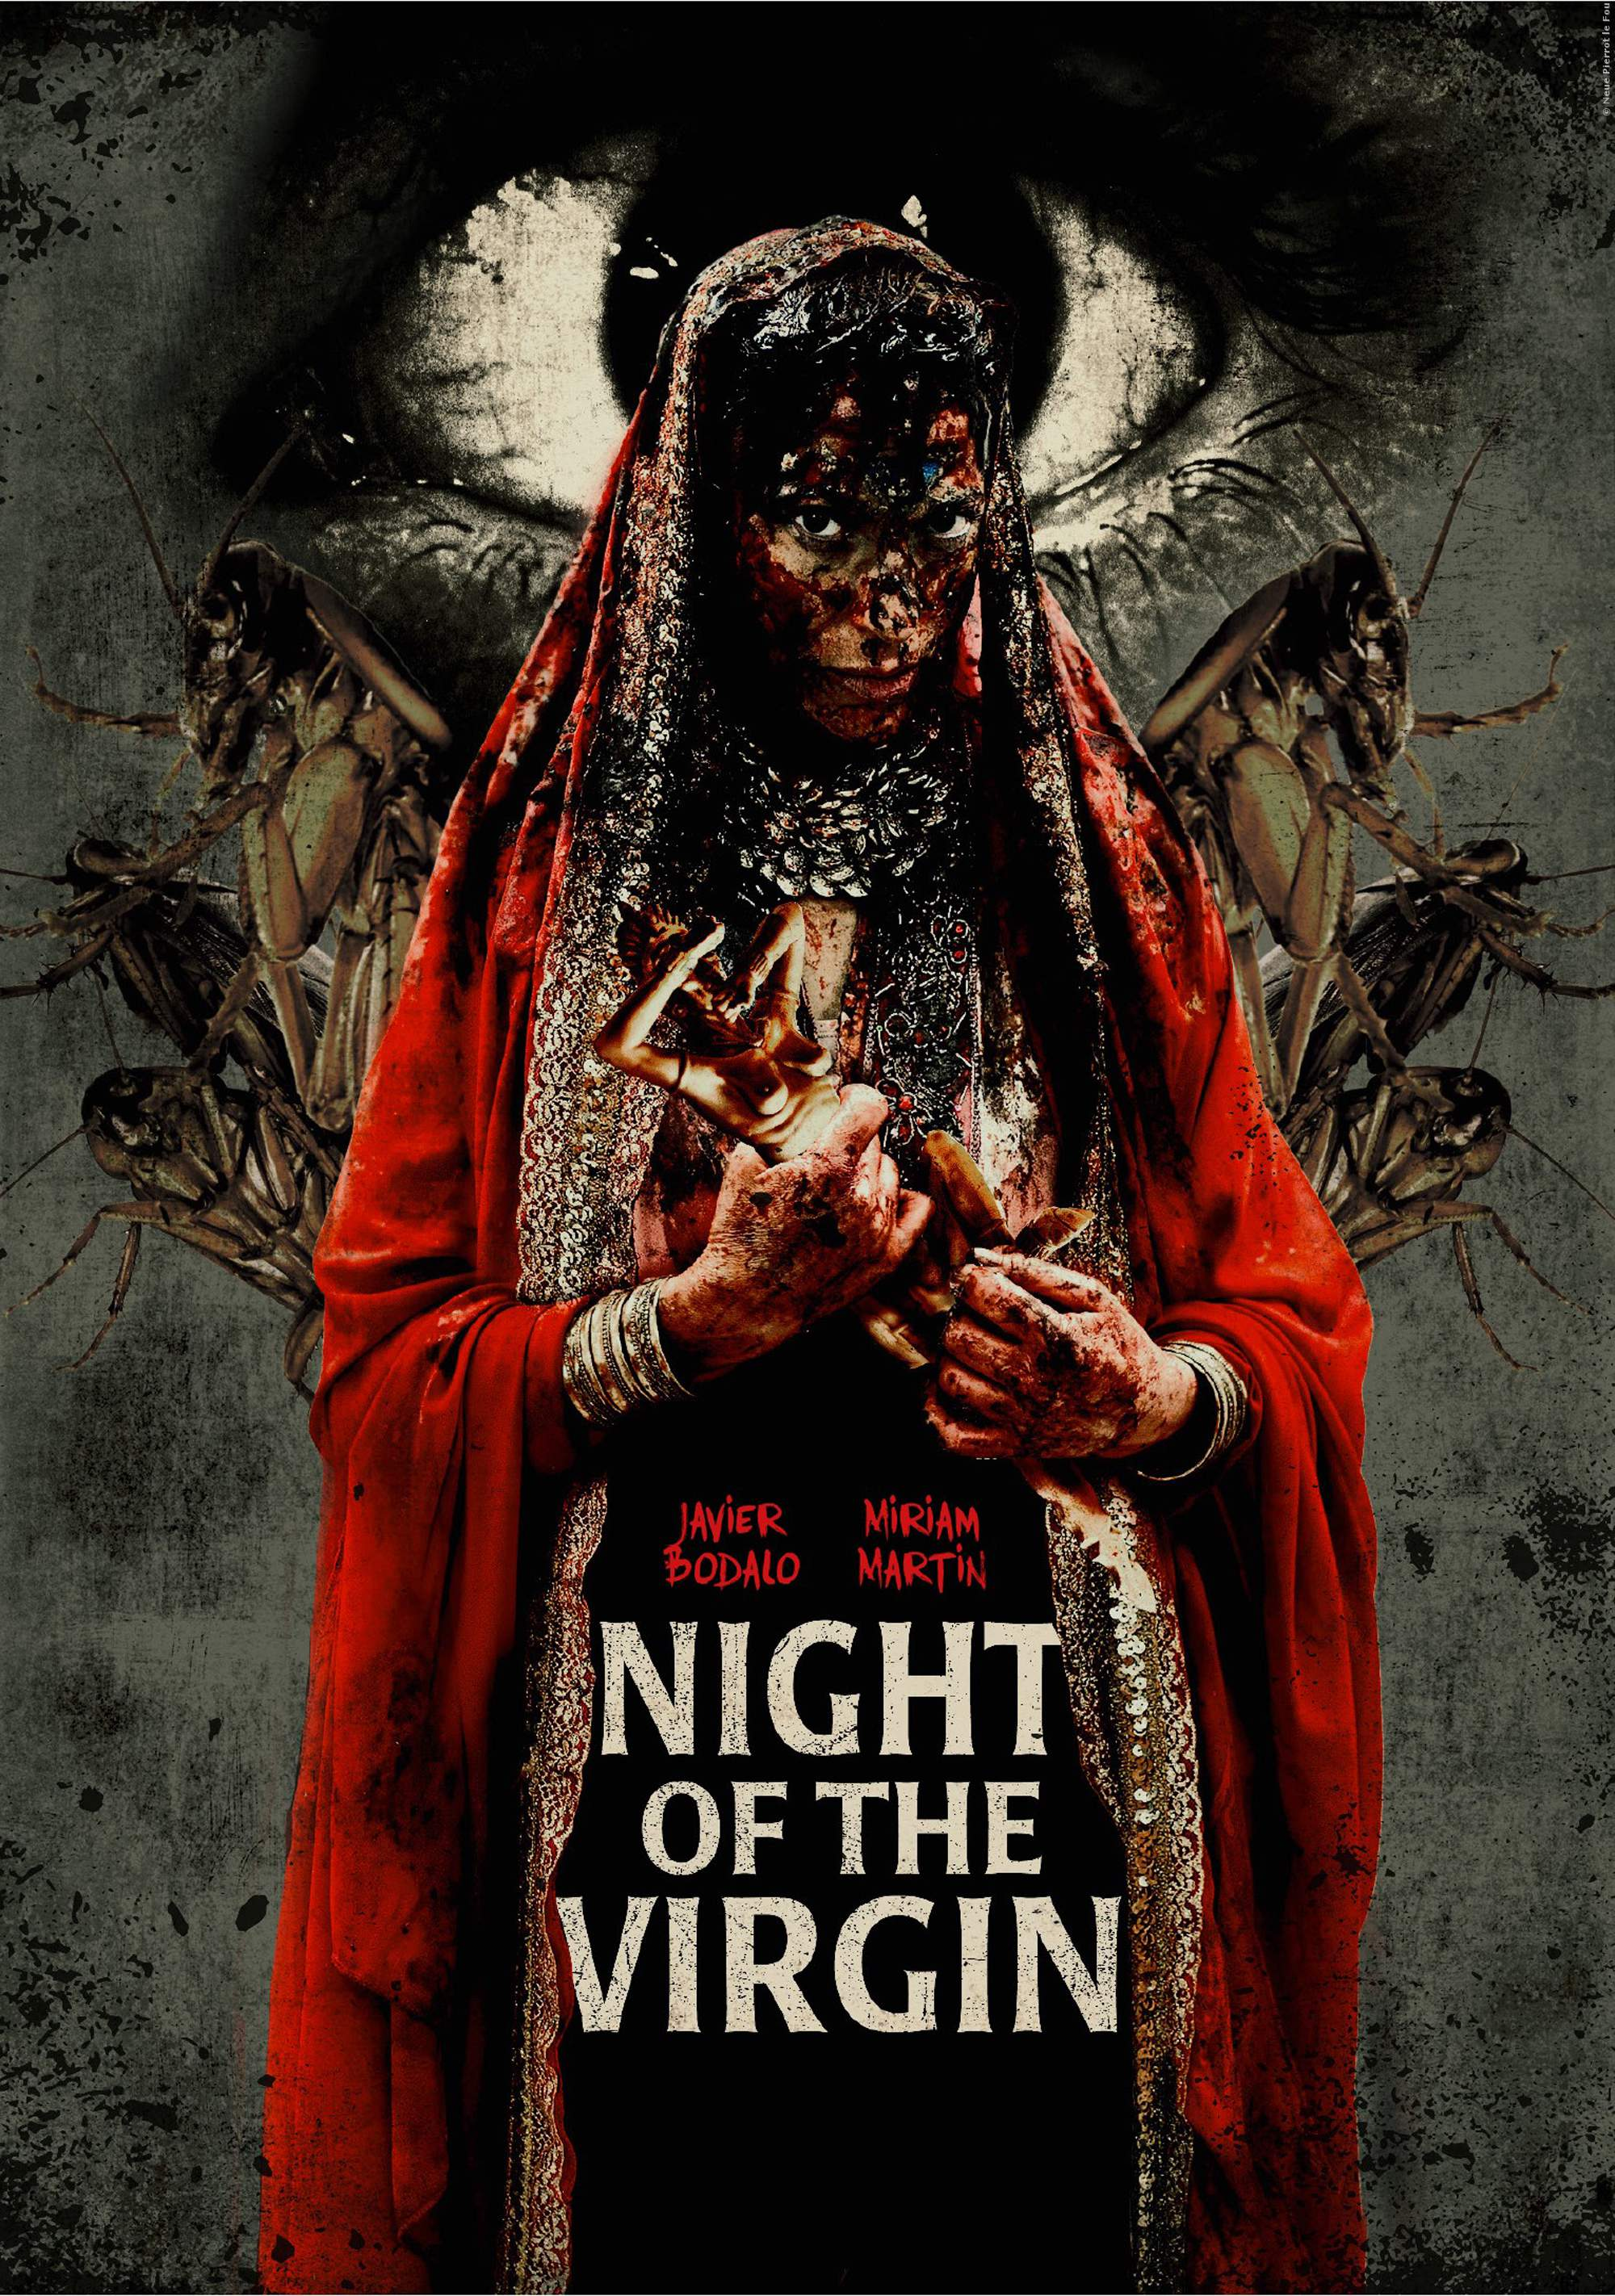 Night Of The Virgin Trailer - Bild 1 von 11